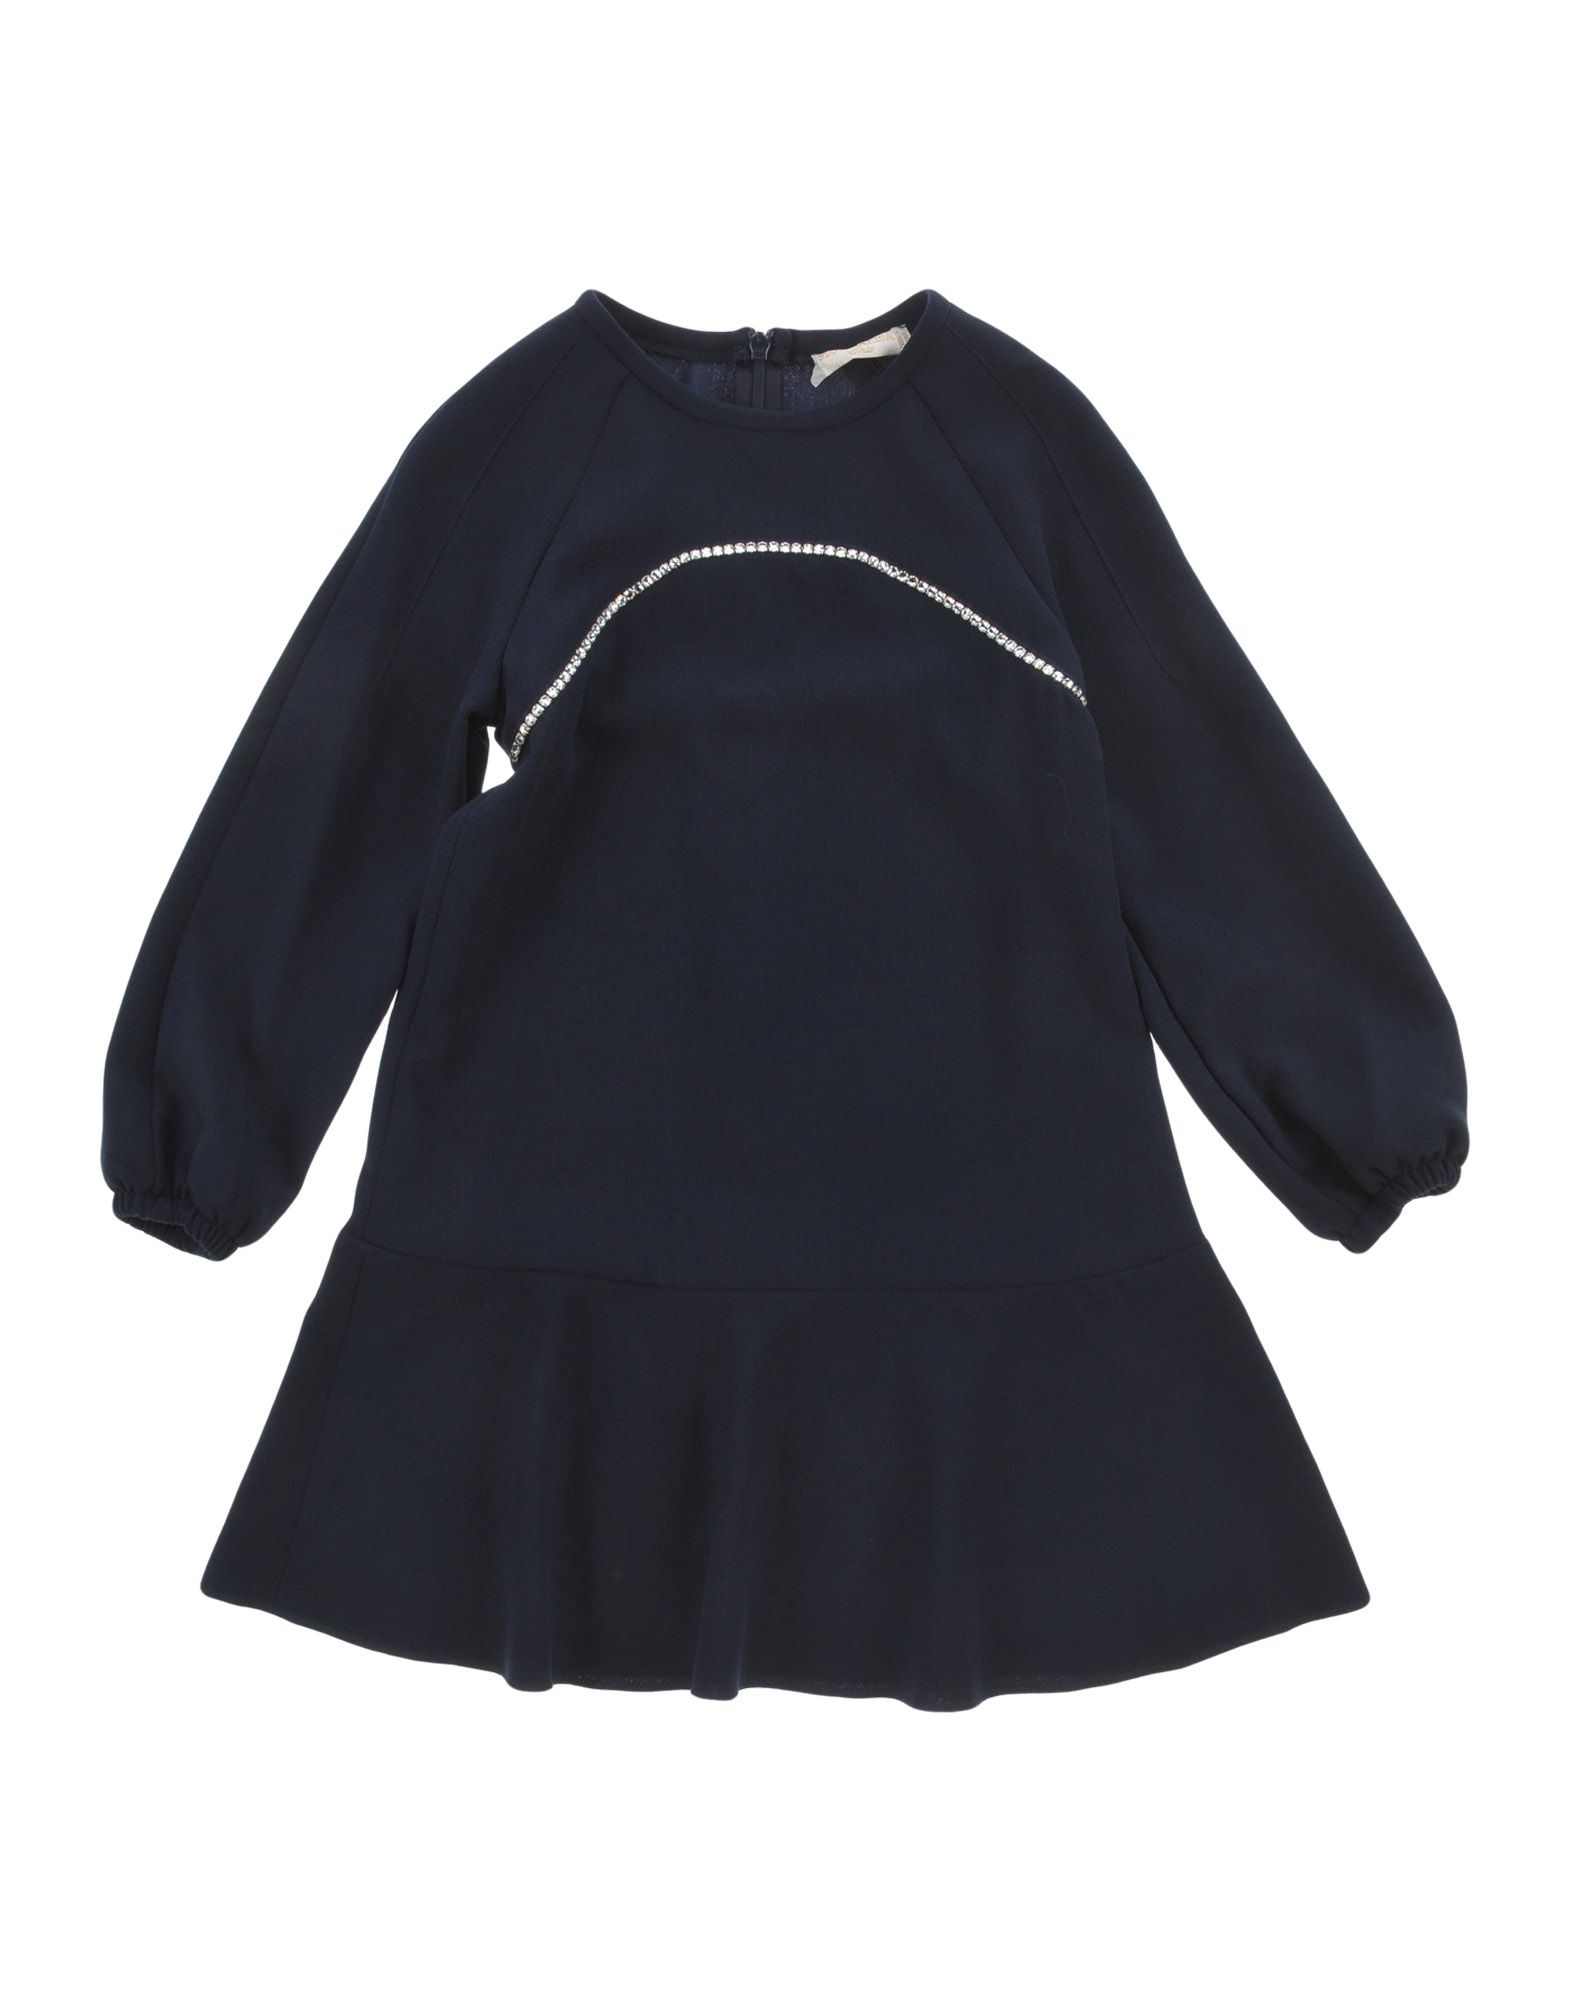 MONNALISA CHIC Dress in Dark Blue